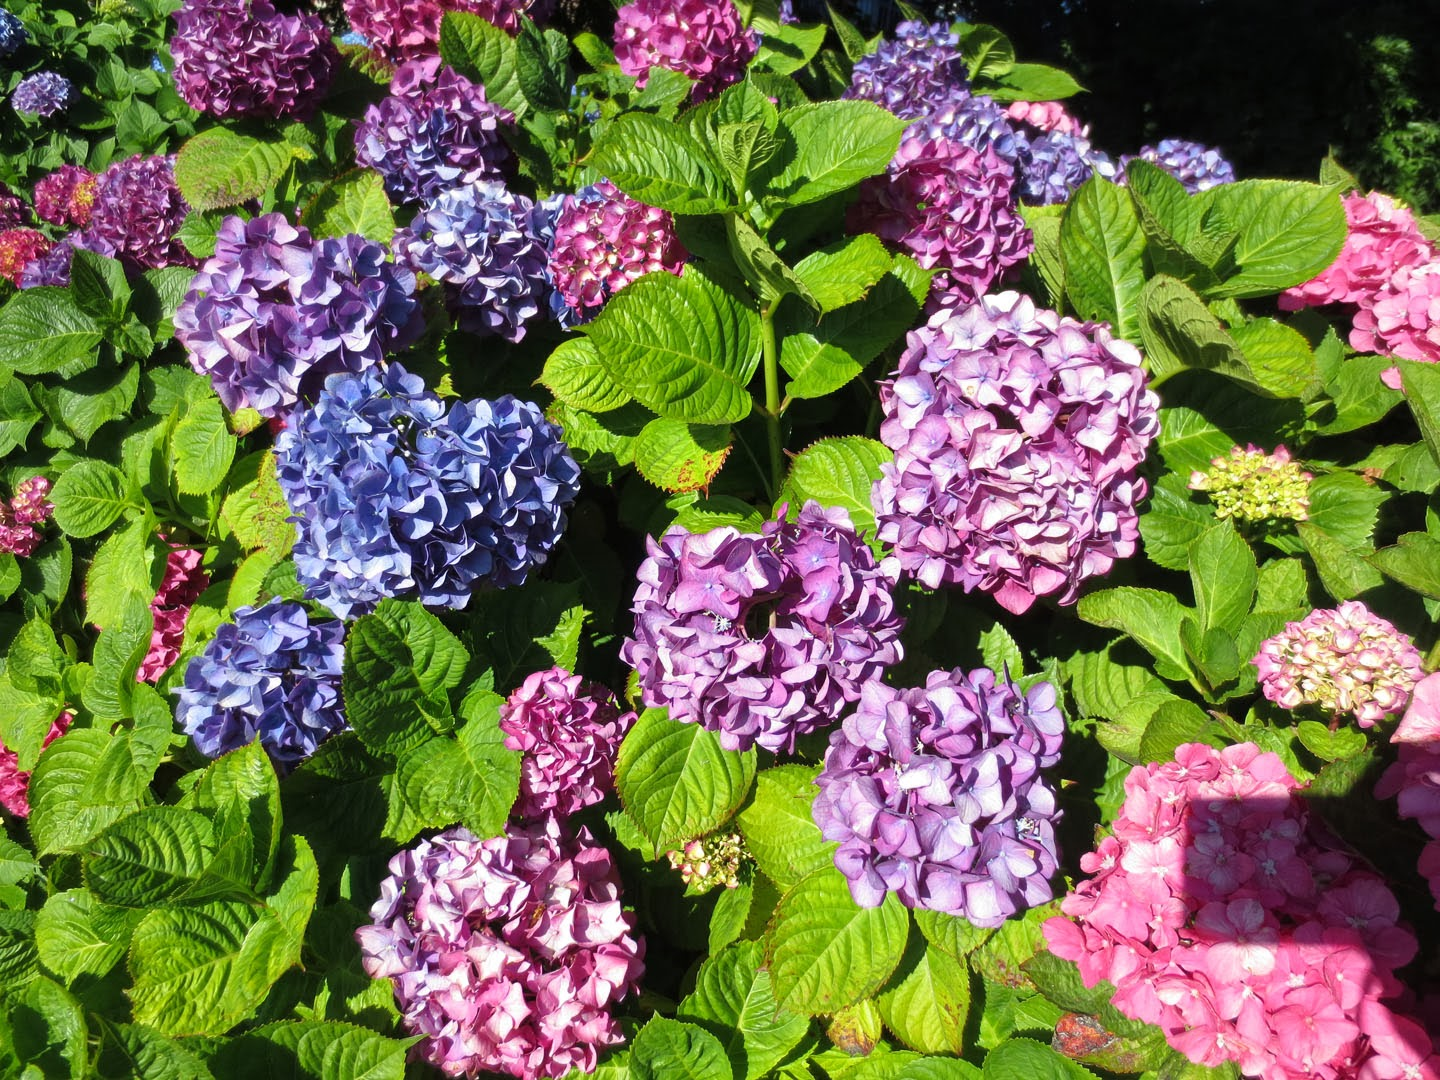 hydrangeas at the empress hotel